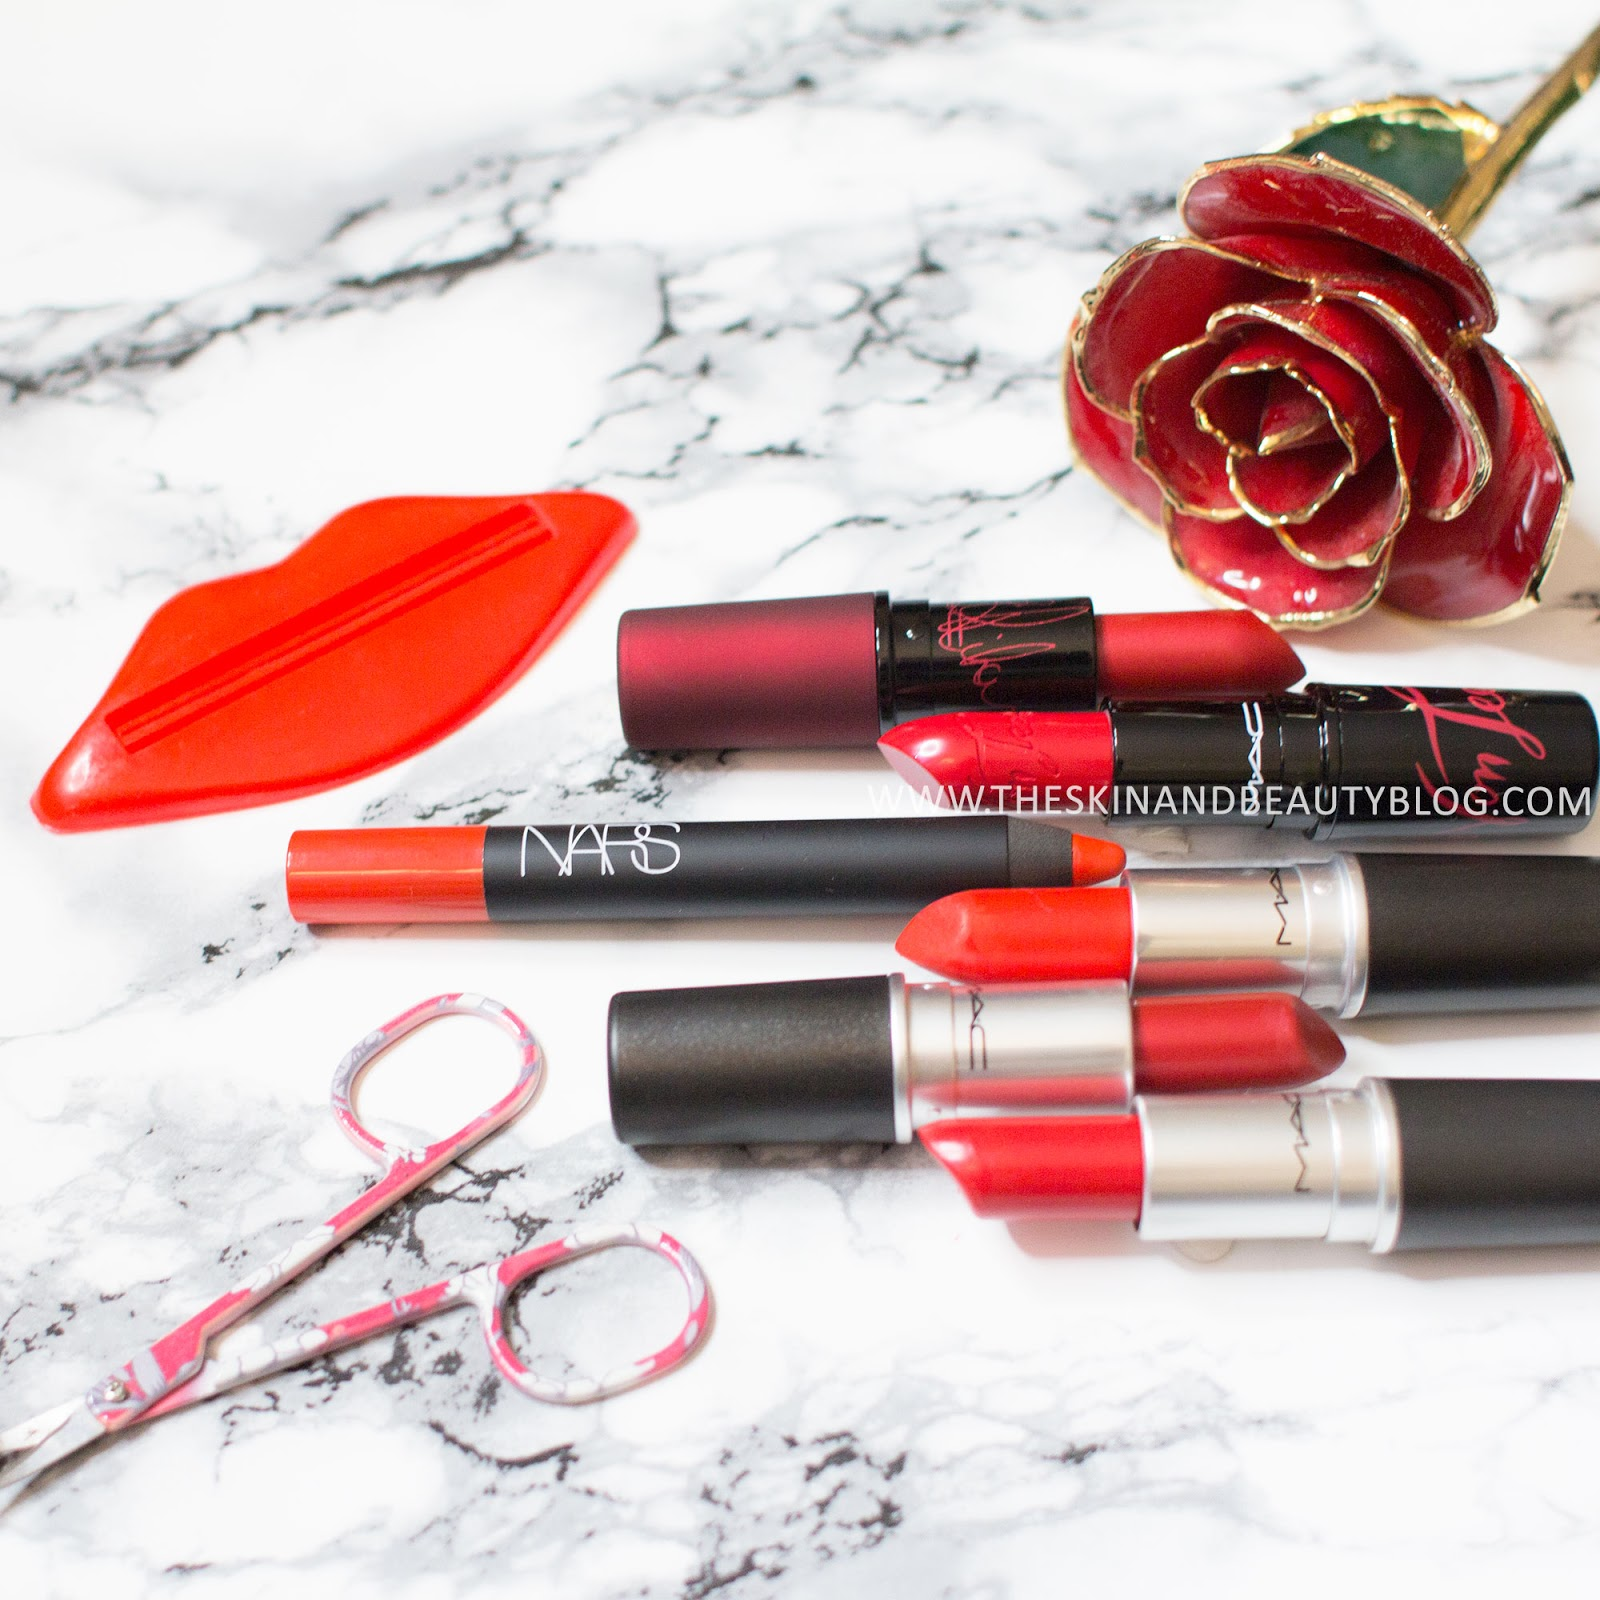 MAC Powerhouse Lipstick, MAC Lady Danger Lipstick, NARS Red Square Velvet Matte Lip Pencil, MAC Von Teese Lipstick, MAC Port Red Lipstick, MAC Port Red Lipstick Review Swatches